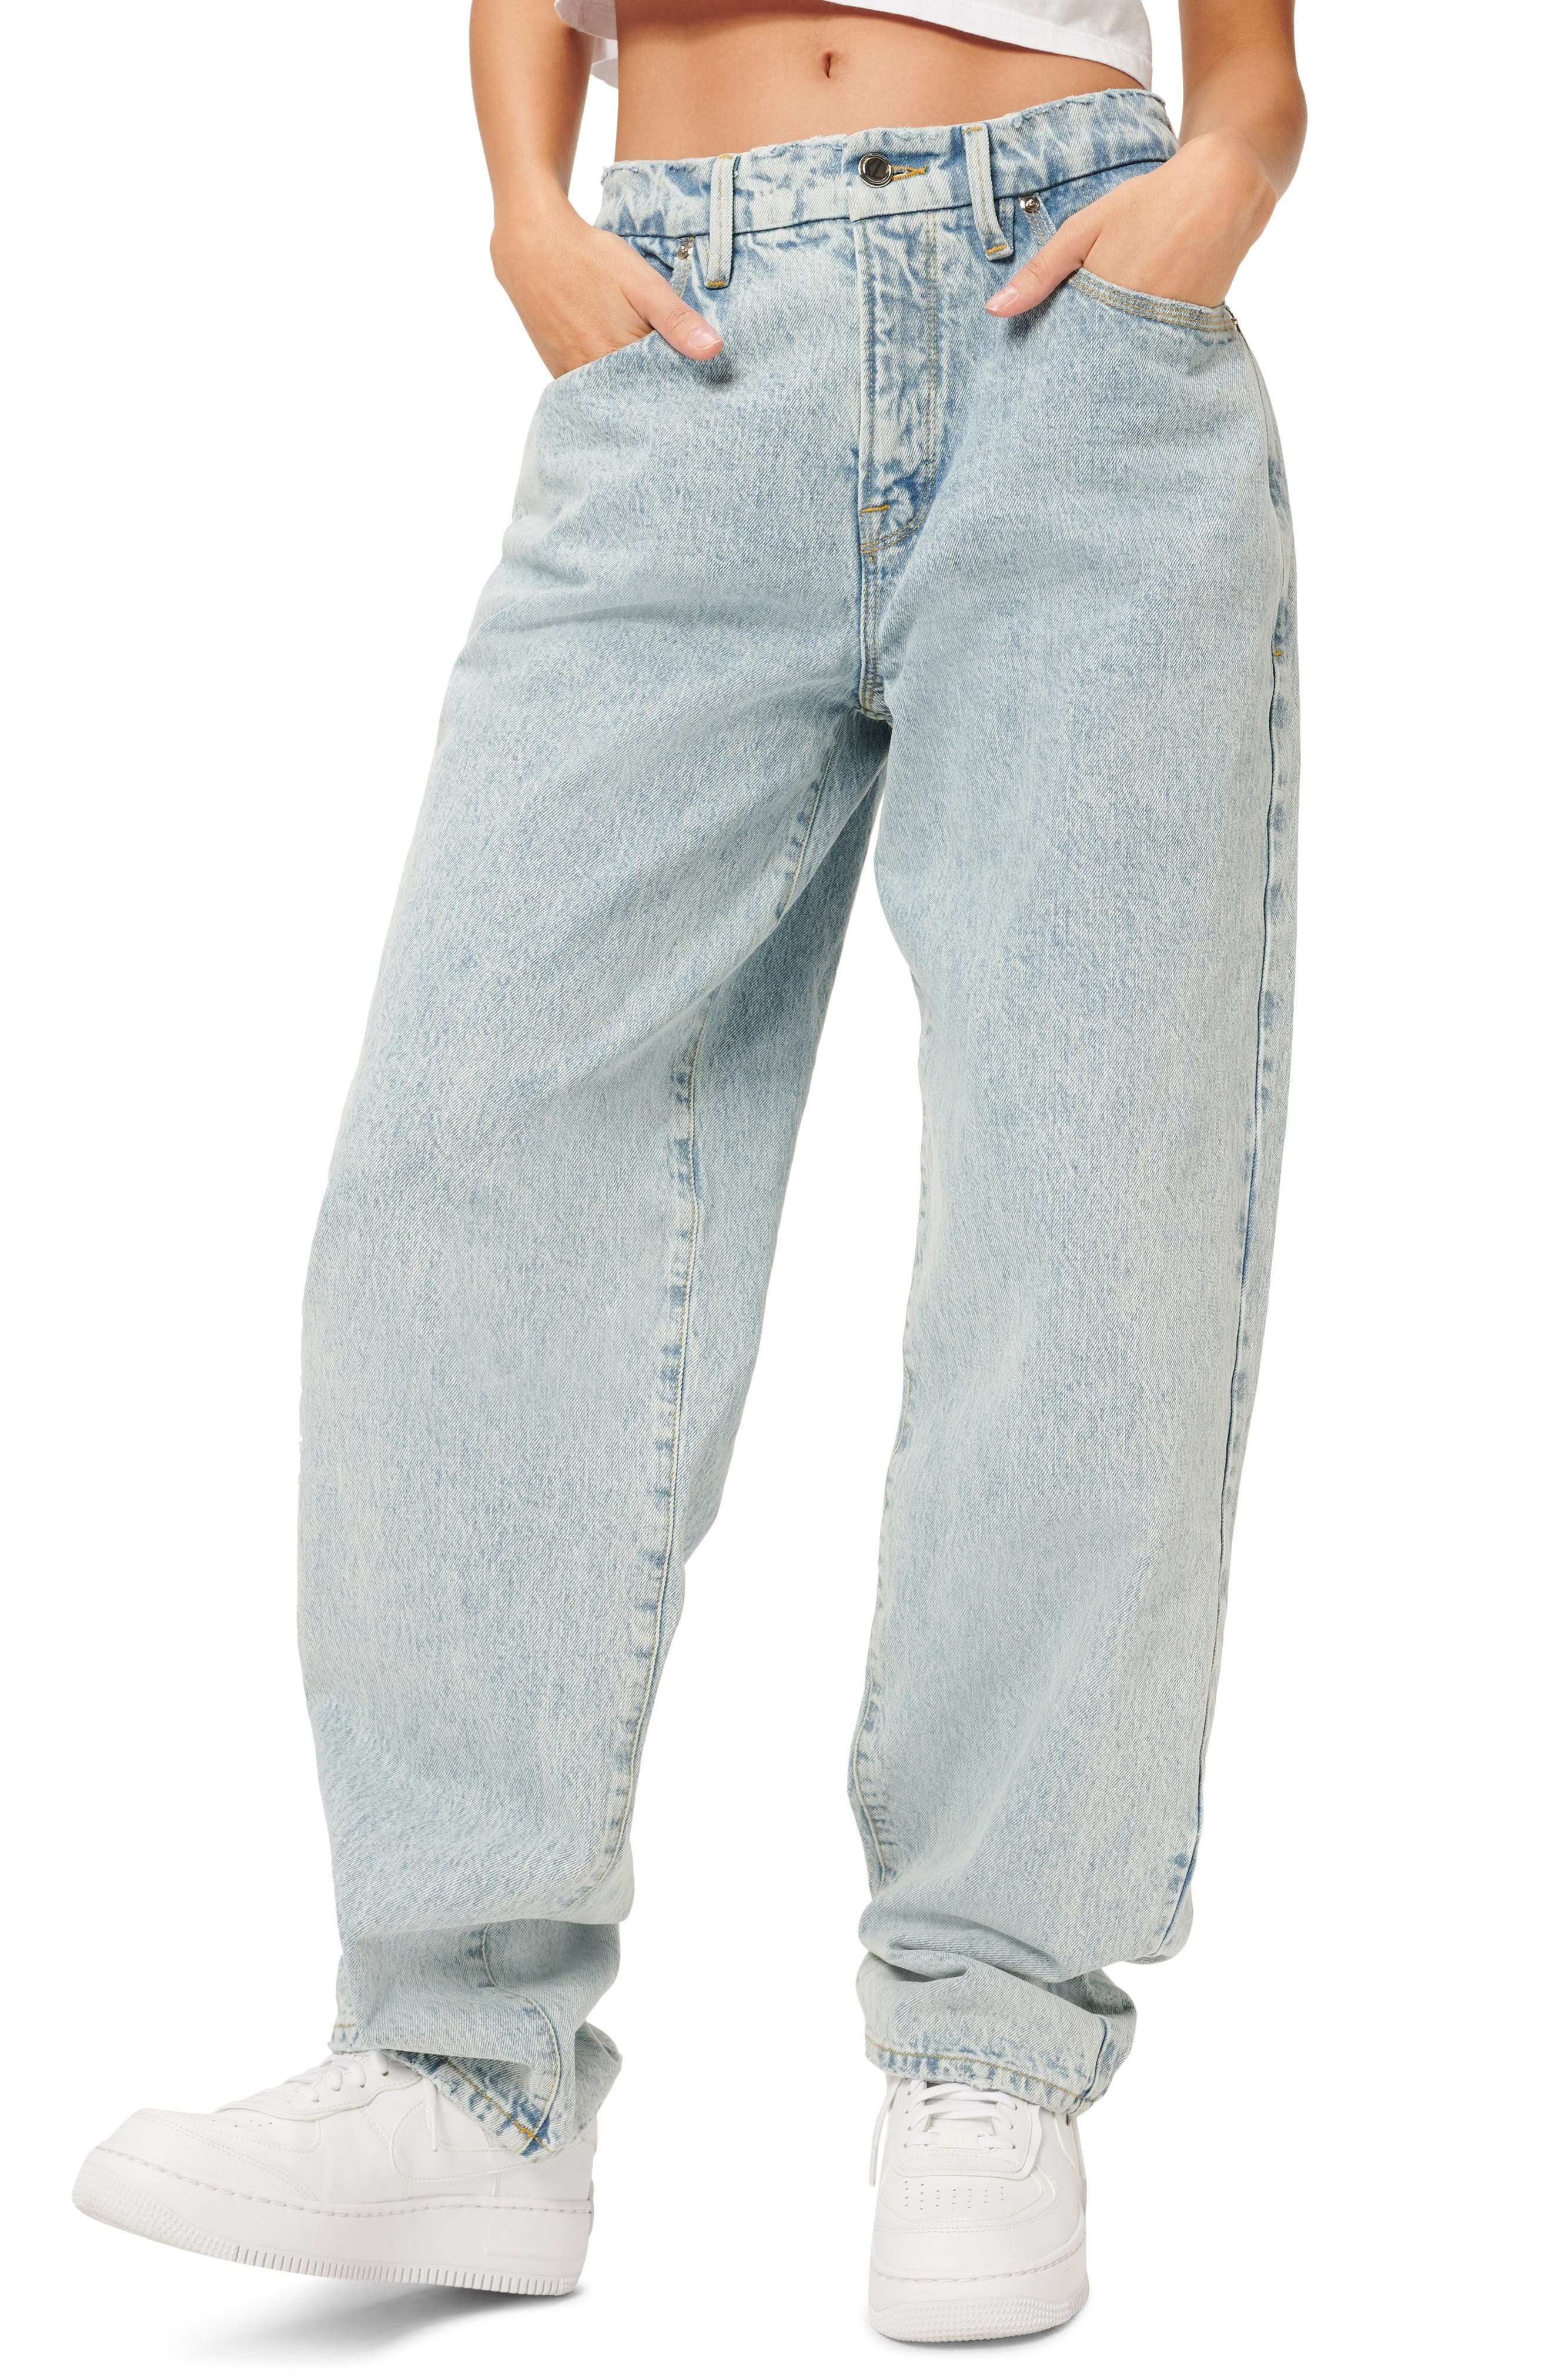 Women's Good American Good 90S High Waist Loose Fit Nonstretch Jeans